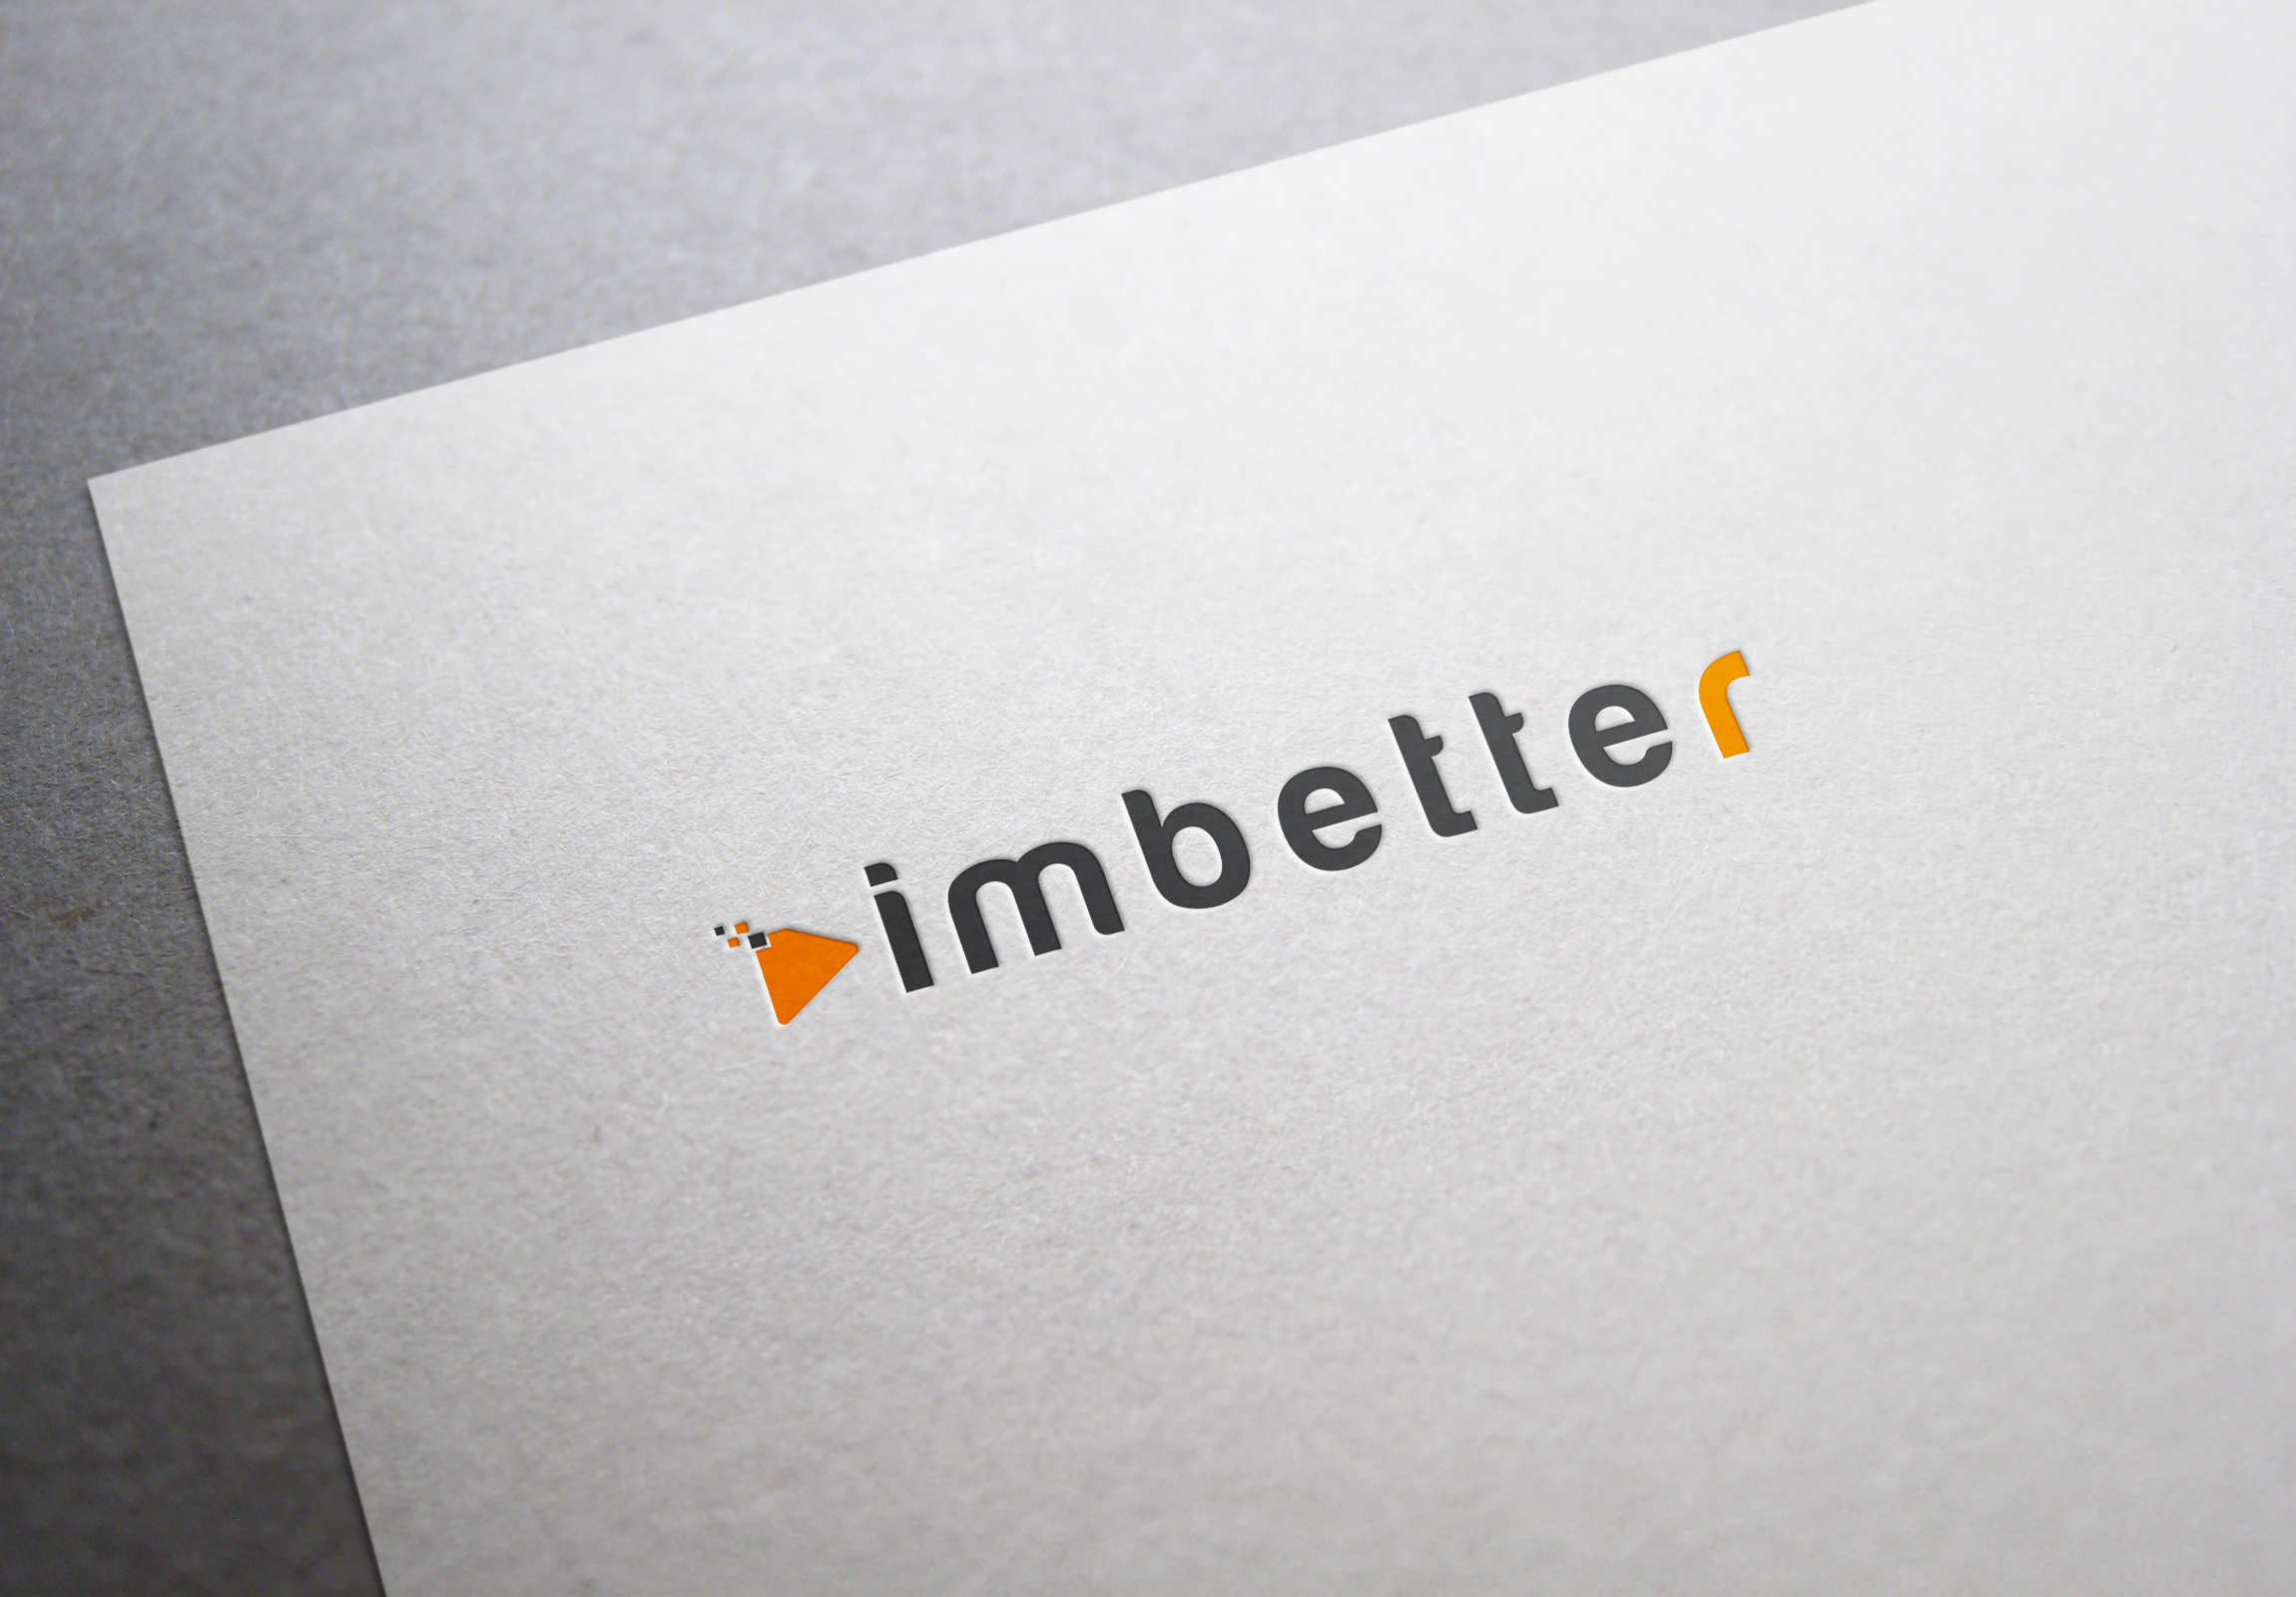 Logo Design by fireacefist - Entry No. 40 in the Logo Design Contest Imaginative Logo Design for imbetter.